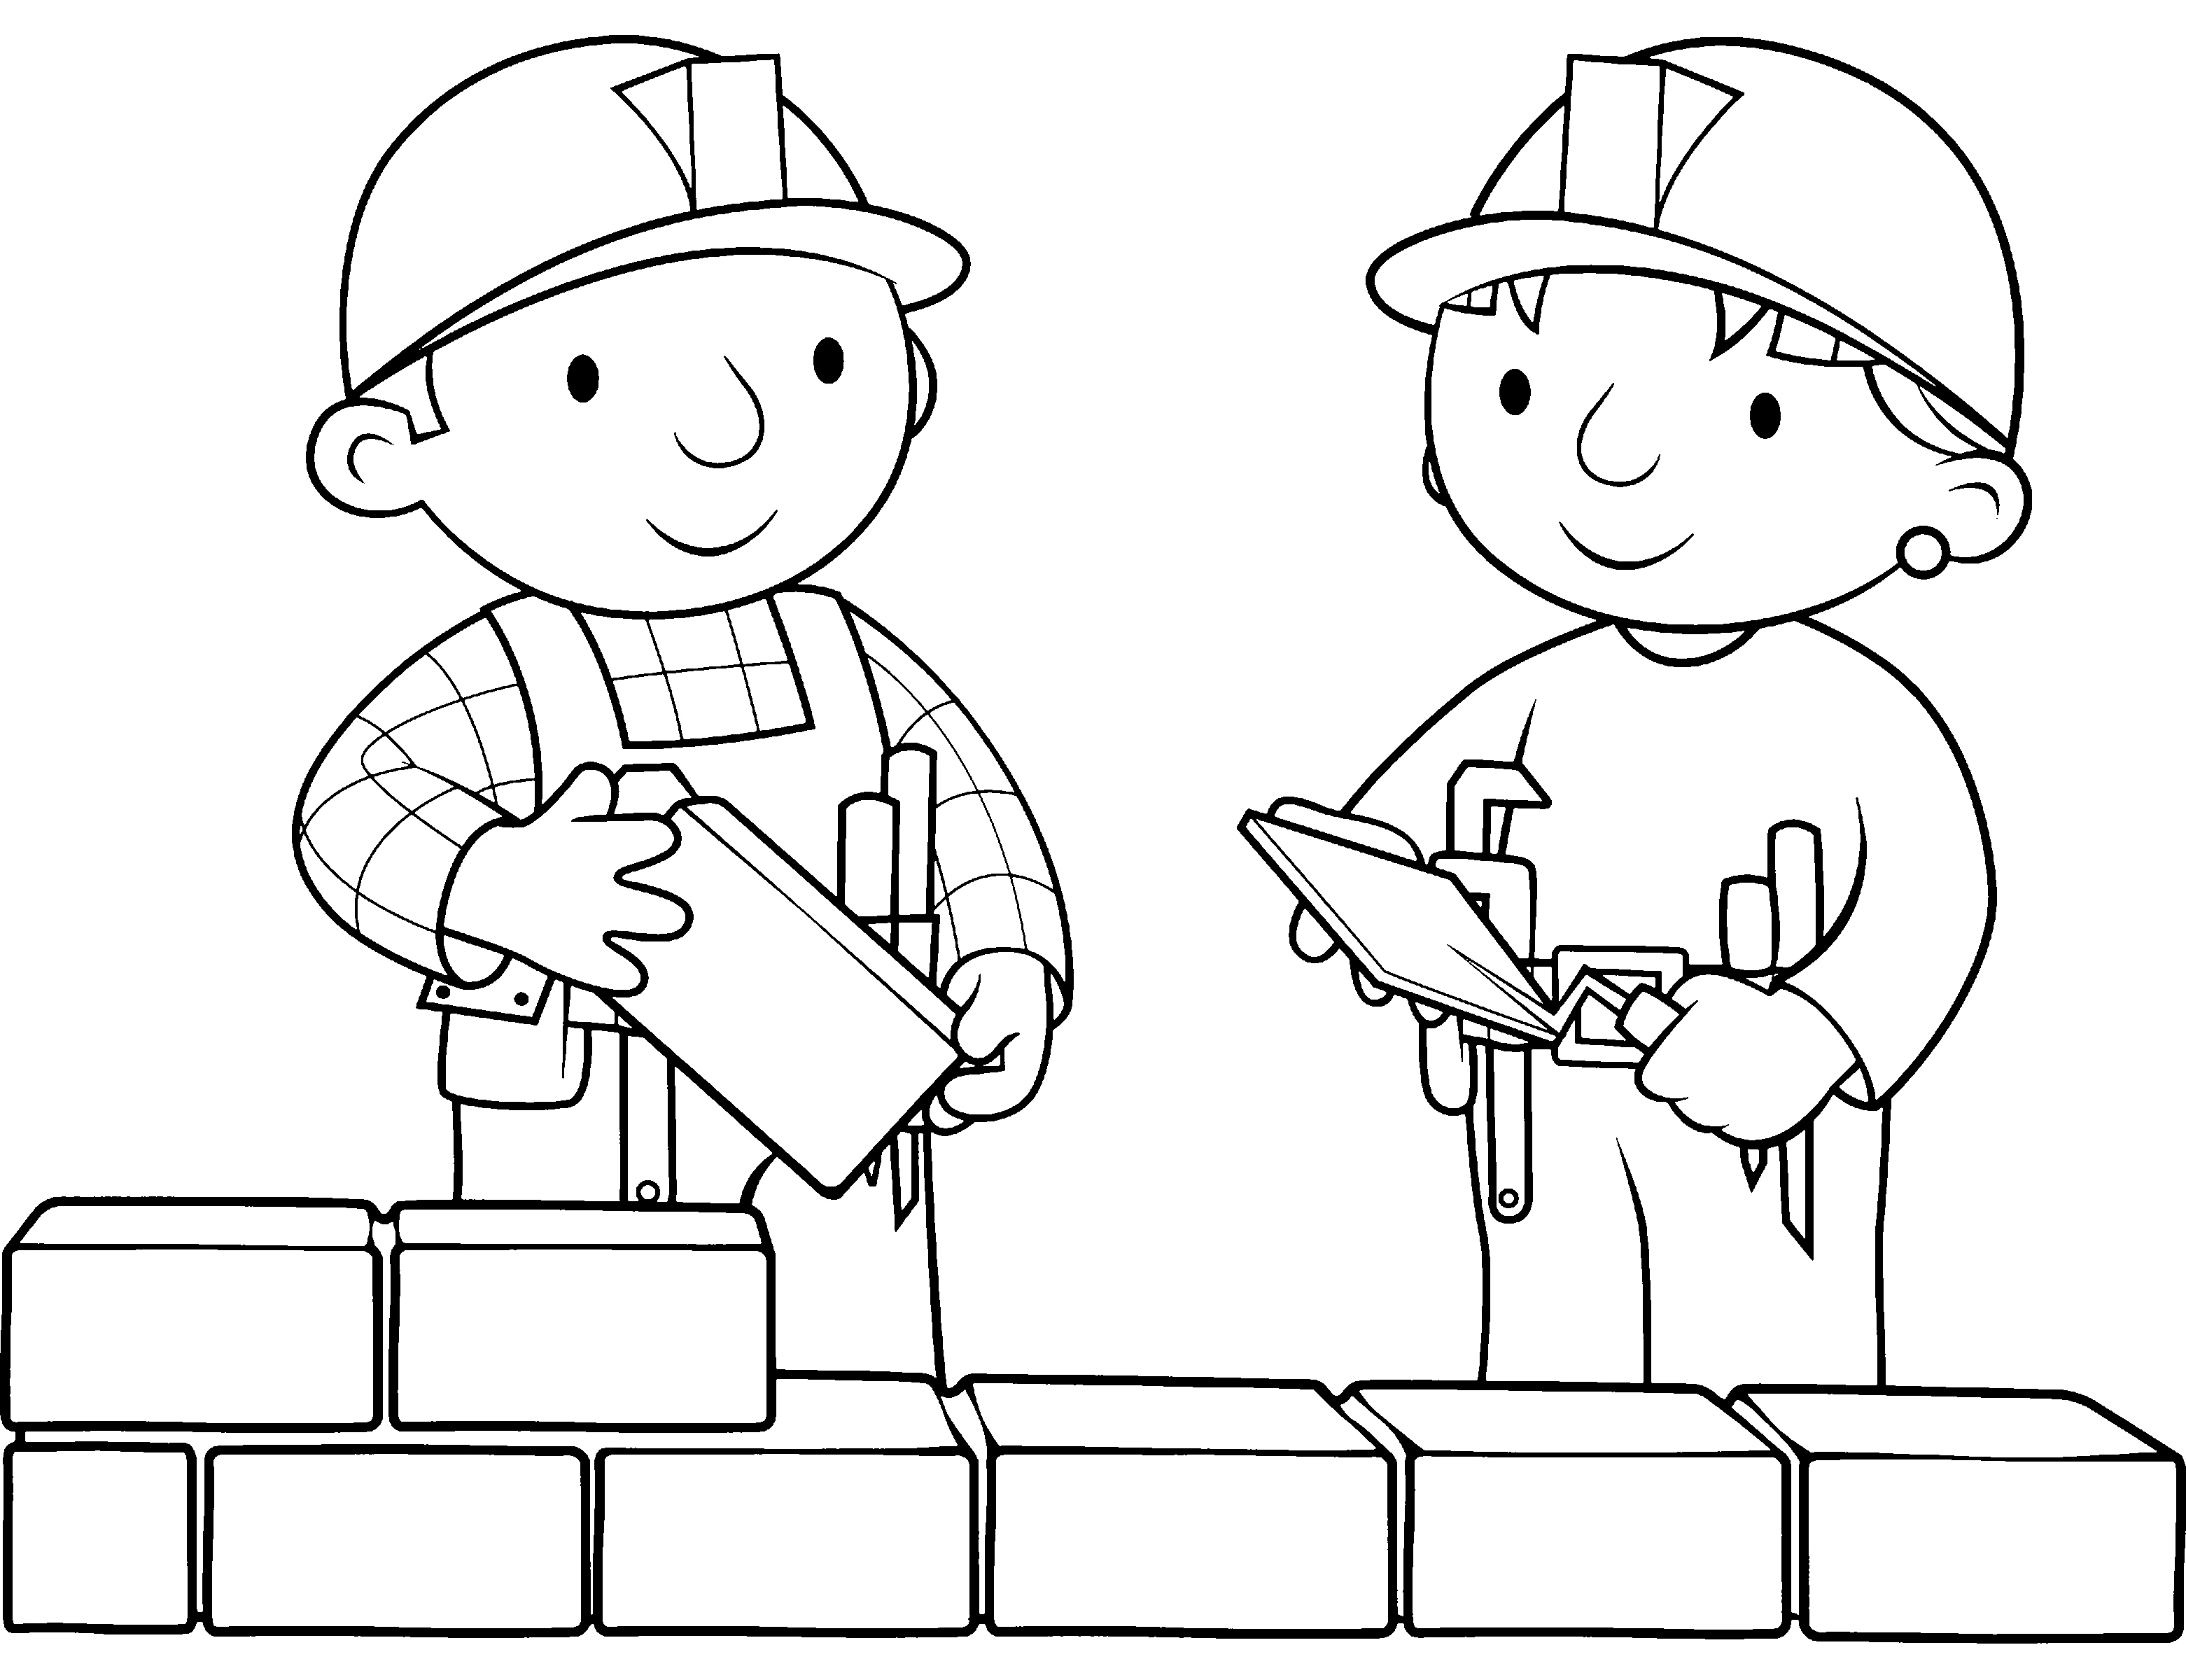 bob the builder coloring pages printable - 5 best images of bricks coloring sheets printable brick